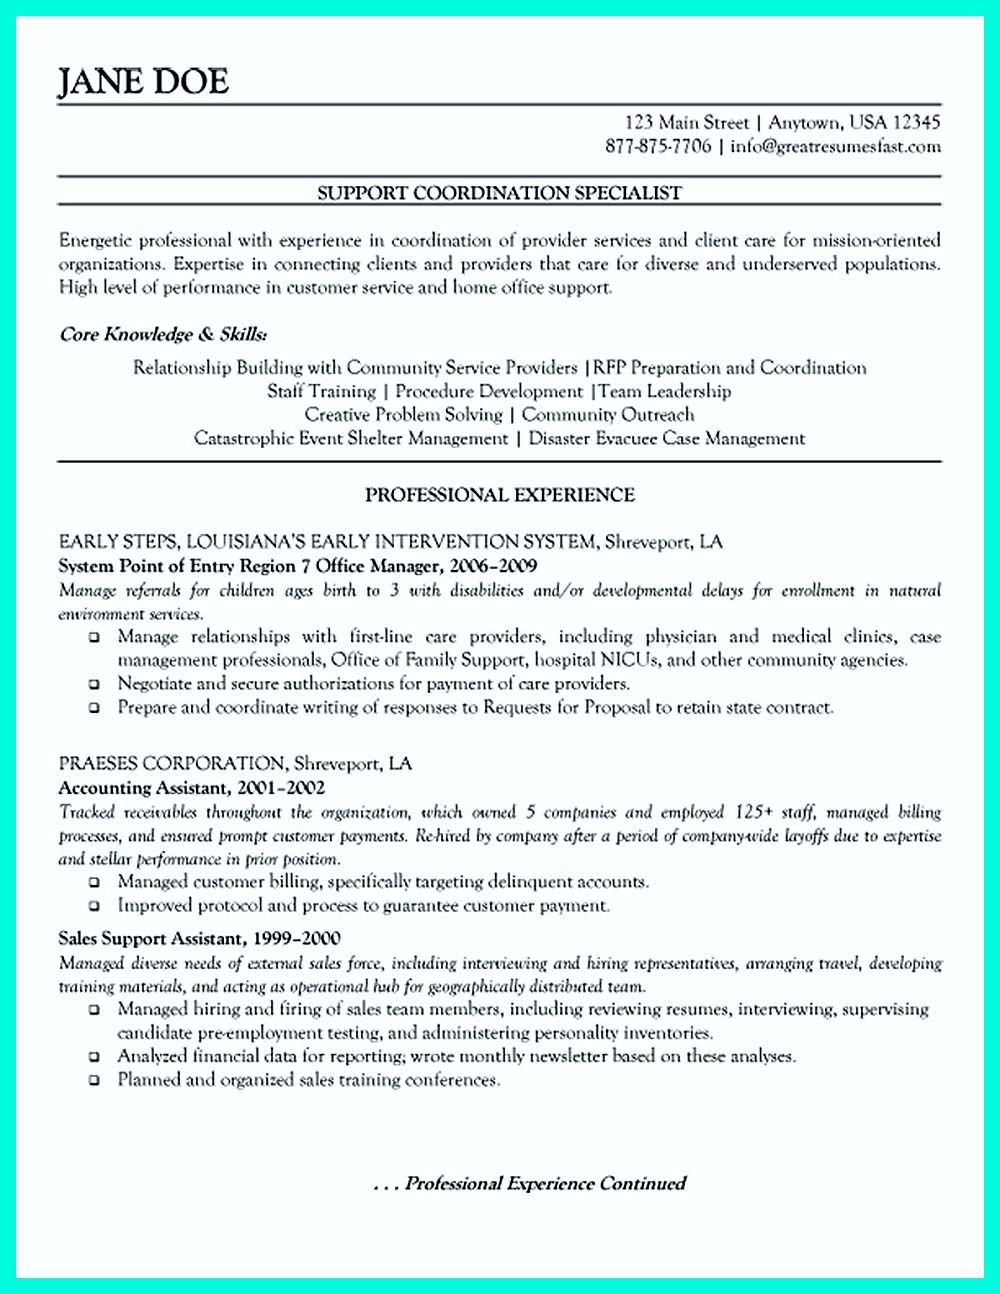 Resume Format Mistakes